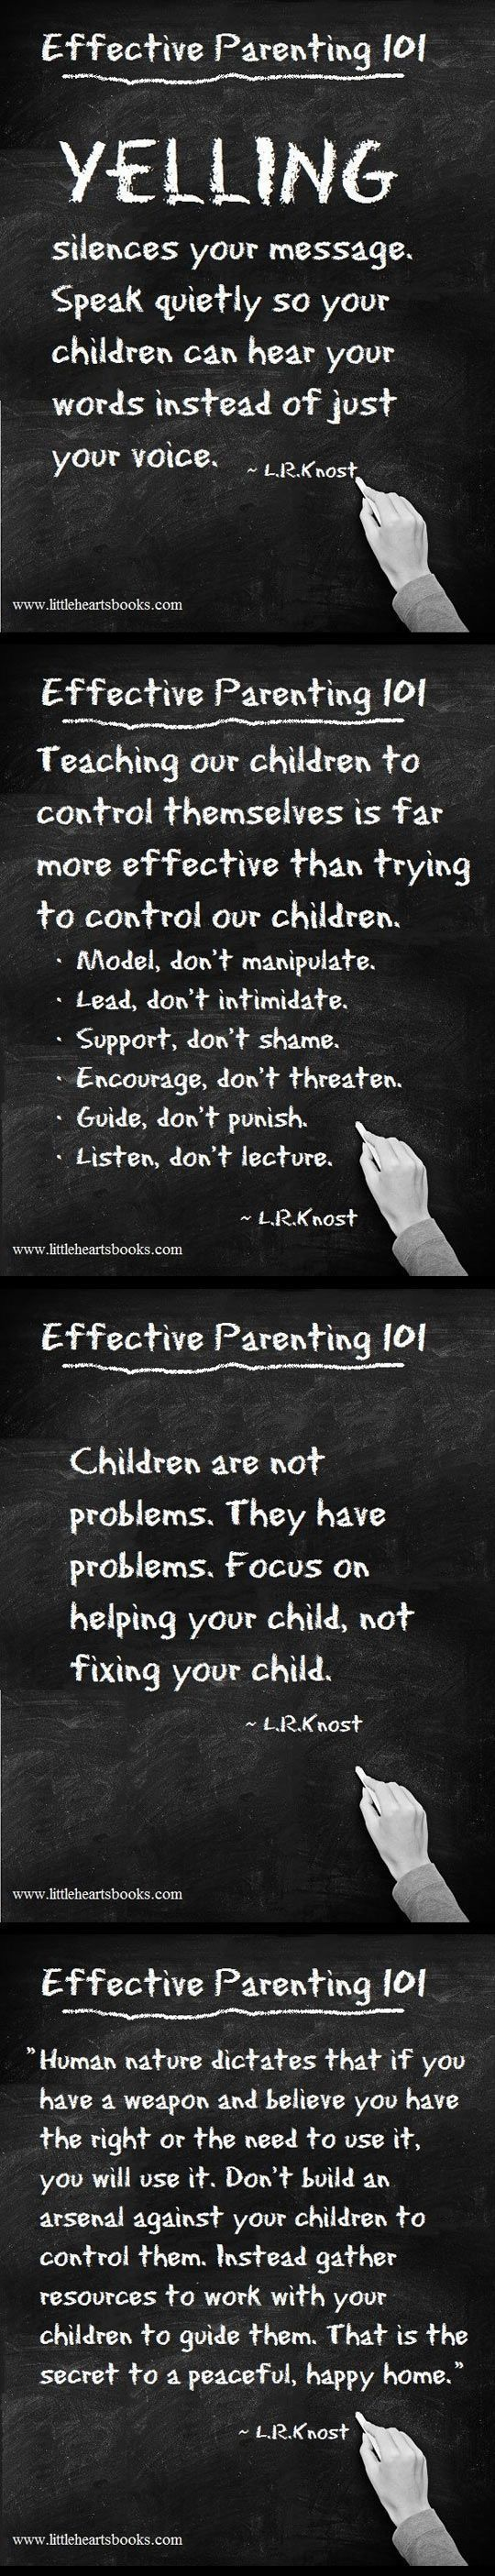 Positive Parenting i am guilty of yelling but trying hard to be a more patient parent #ParentingLove